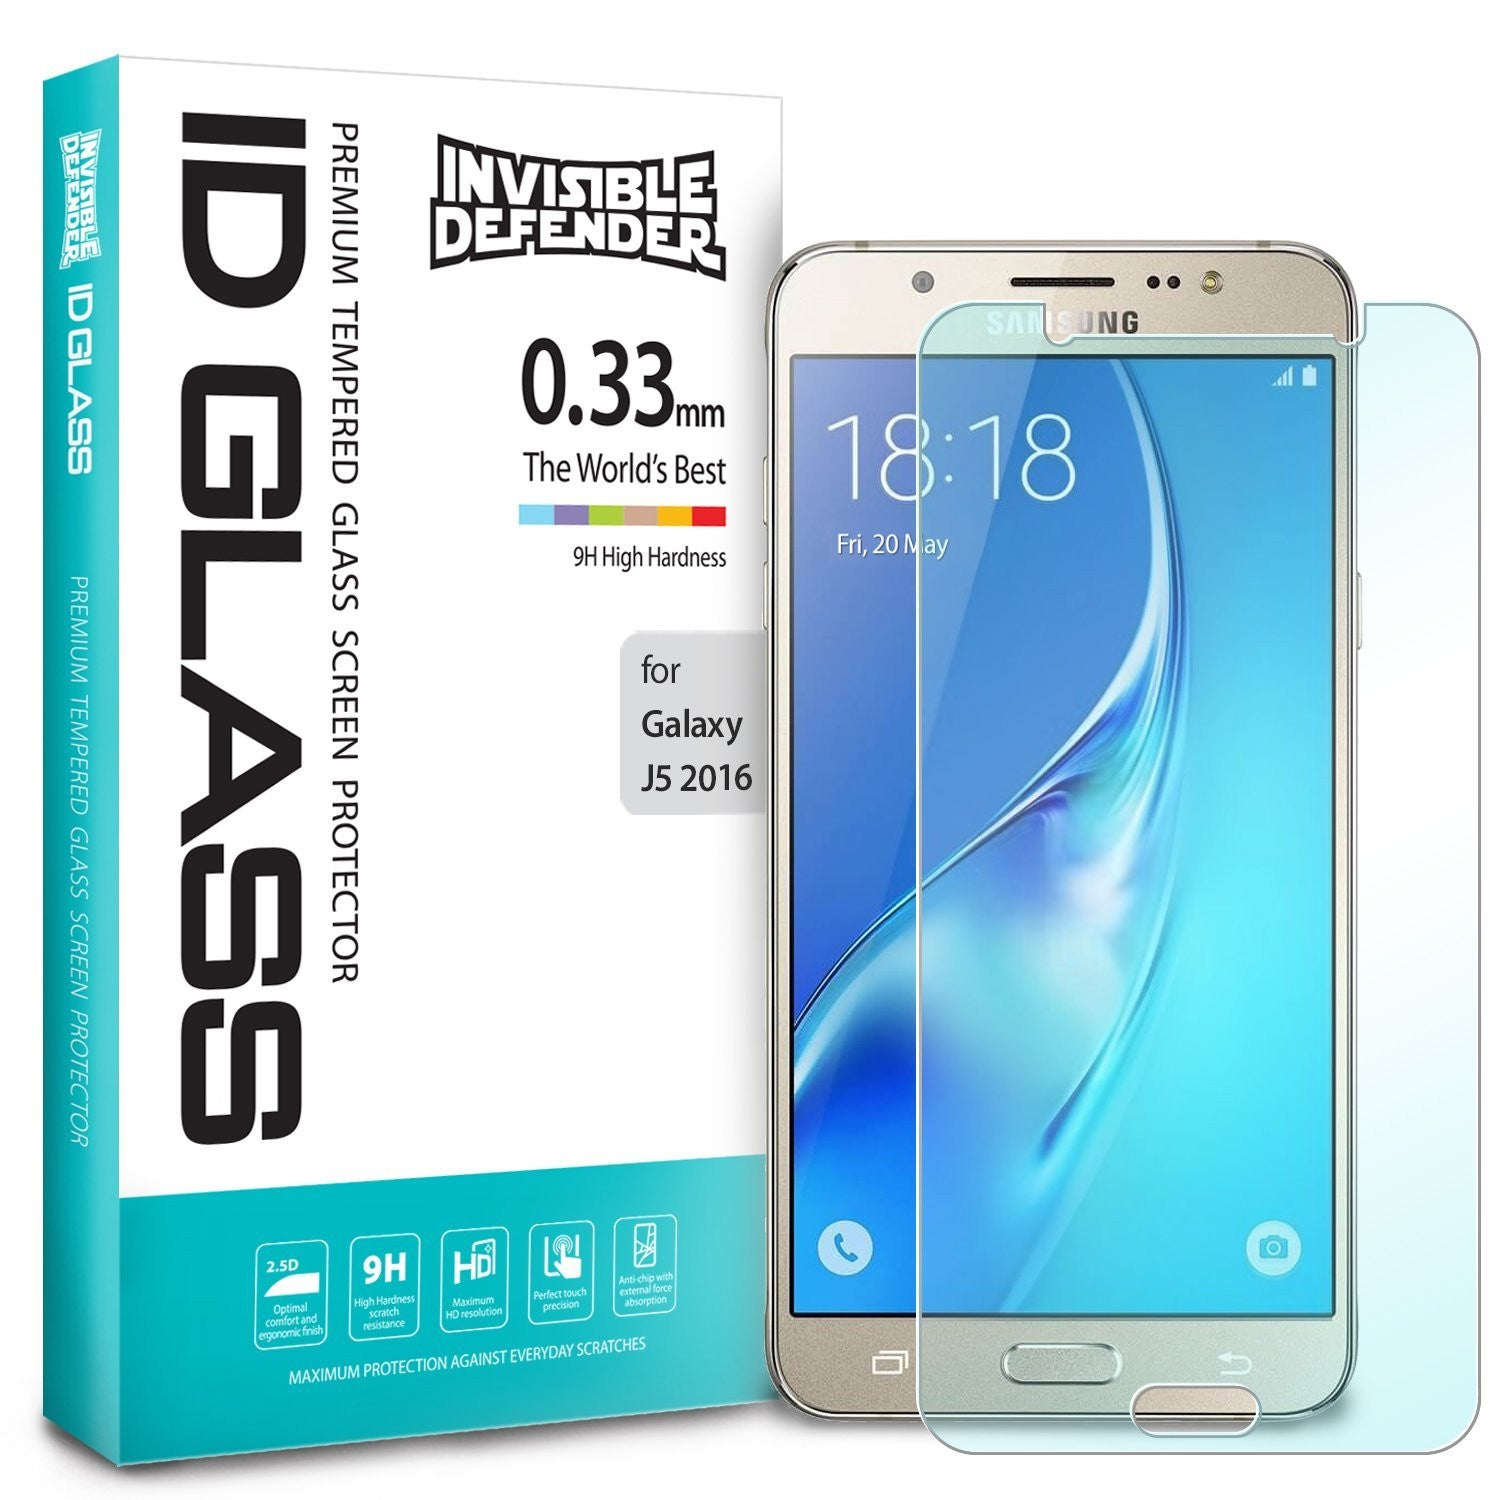 galaxy j5 2016 invisible defender tempered glass screen protector